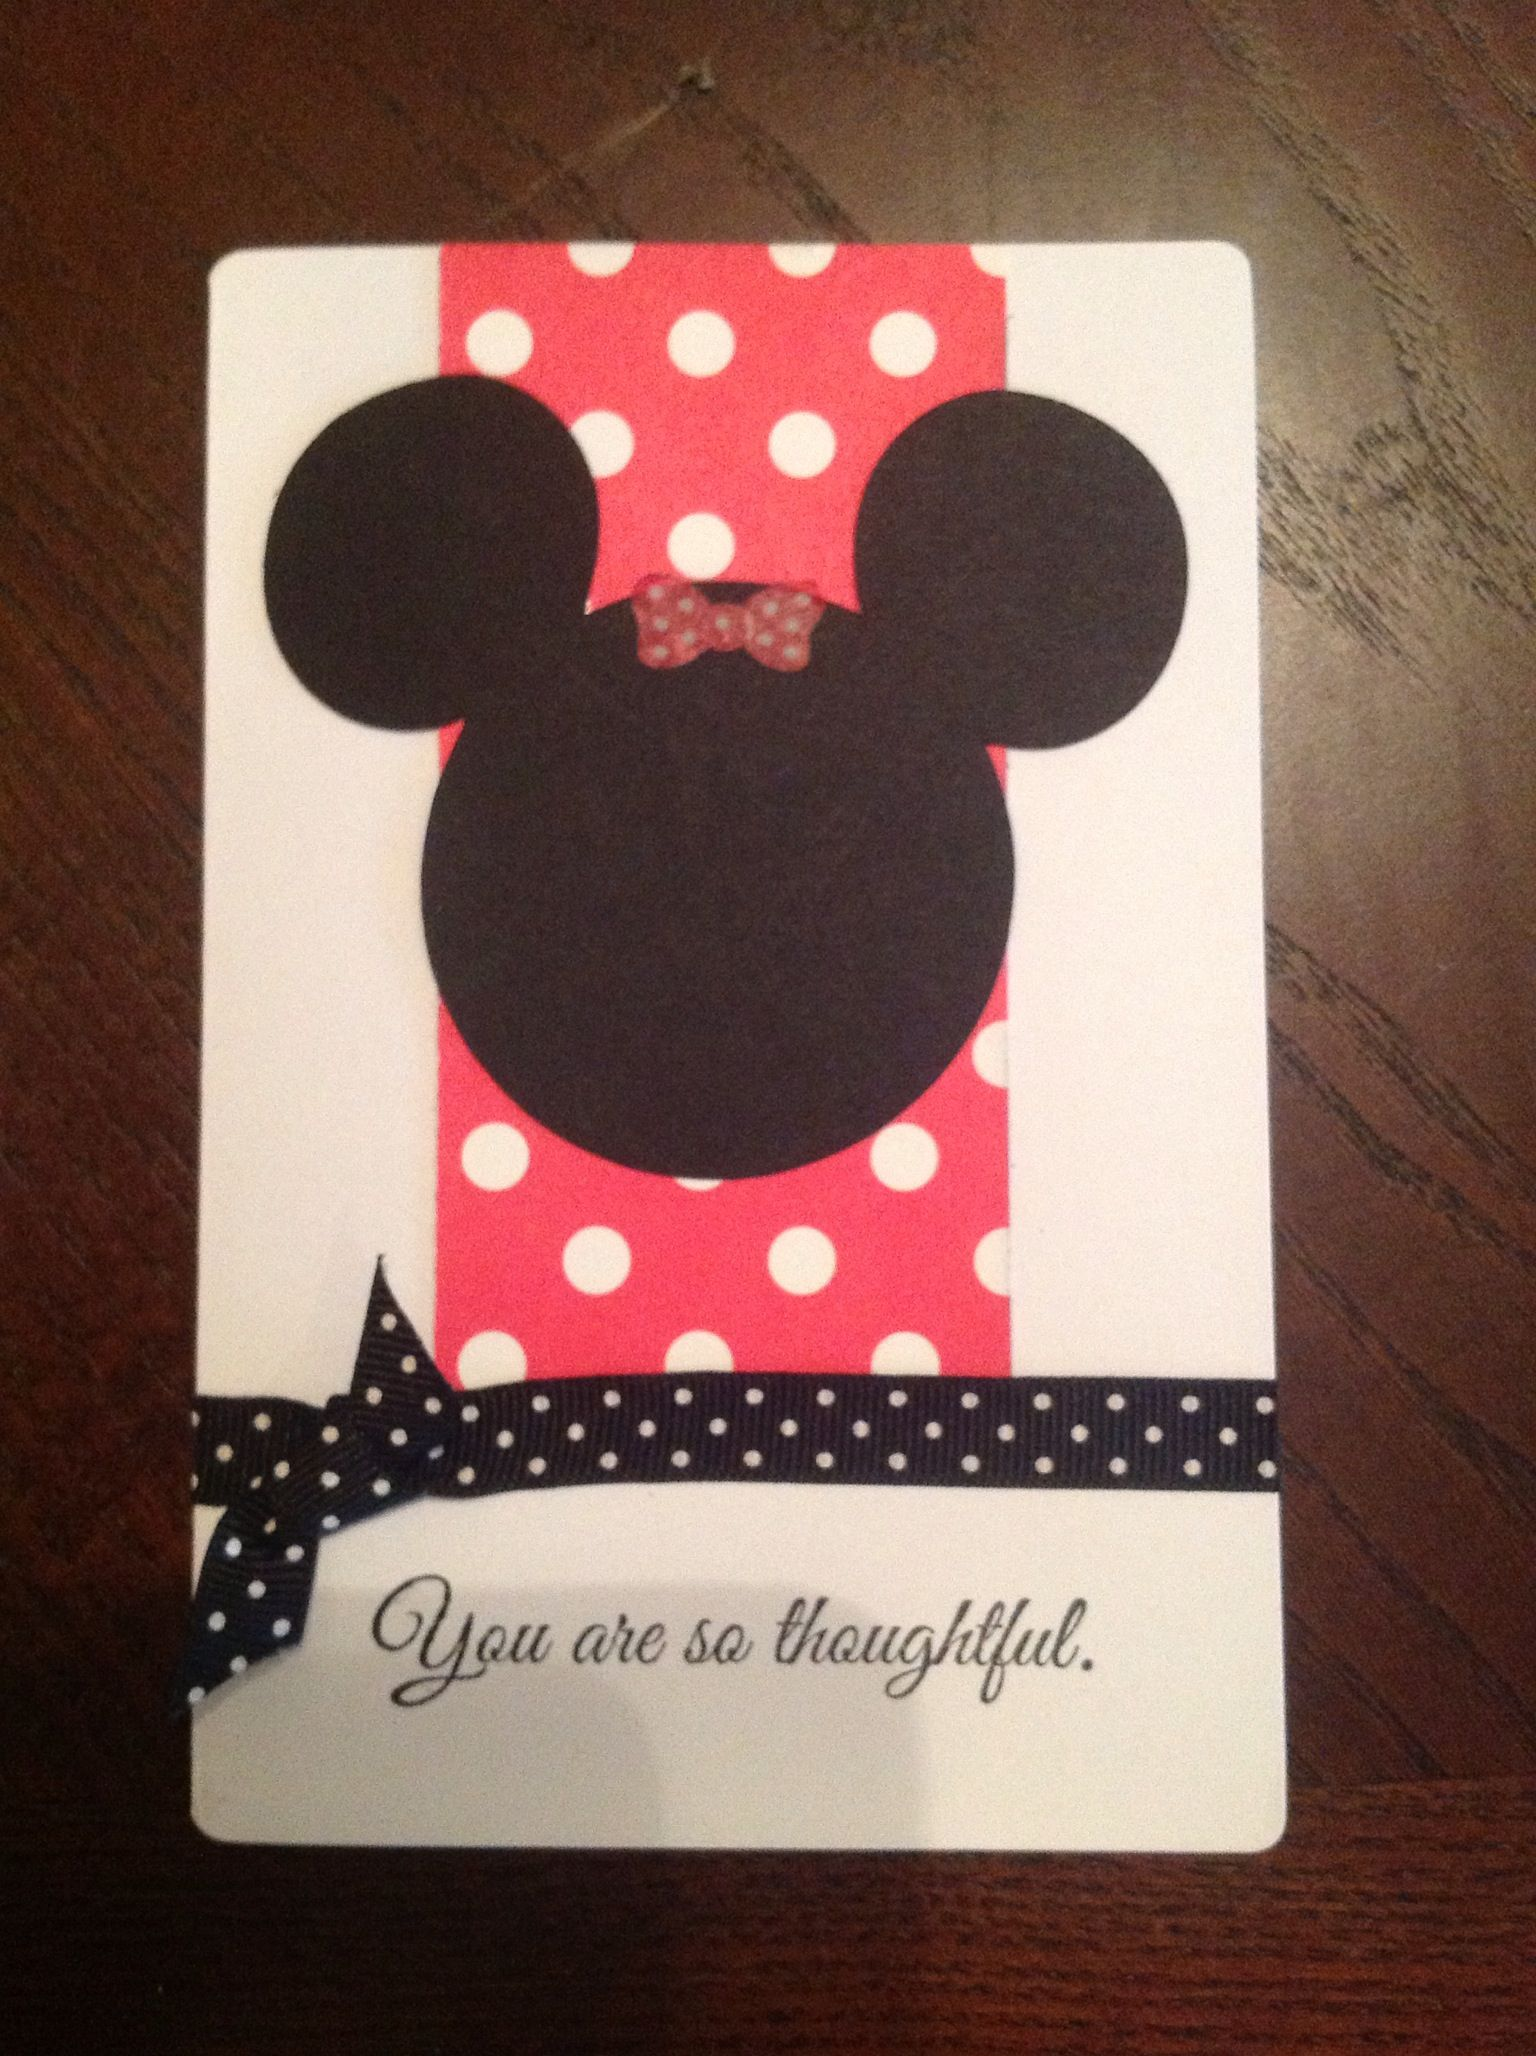 Celebrate Birthday Card With Mickey Mouse Balloons That I Made Disney Birthday Card Birthday Cards Diy Mickey Mouse Balloons